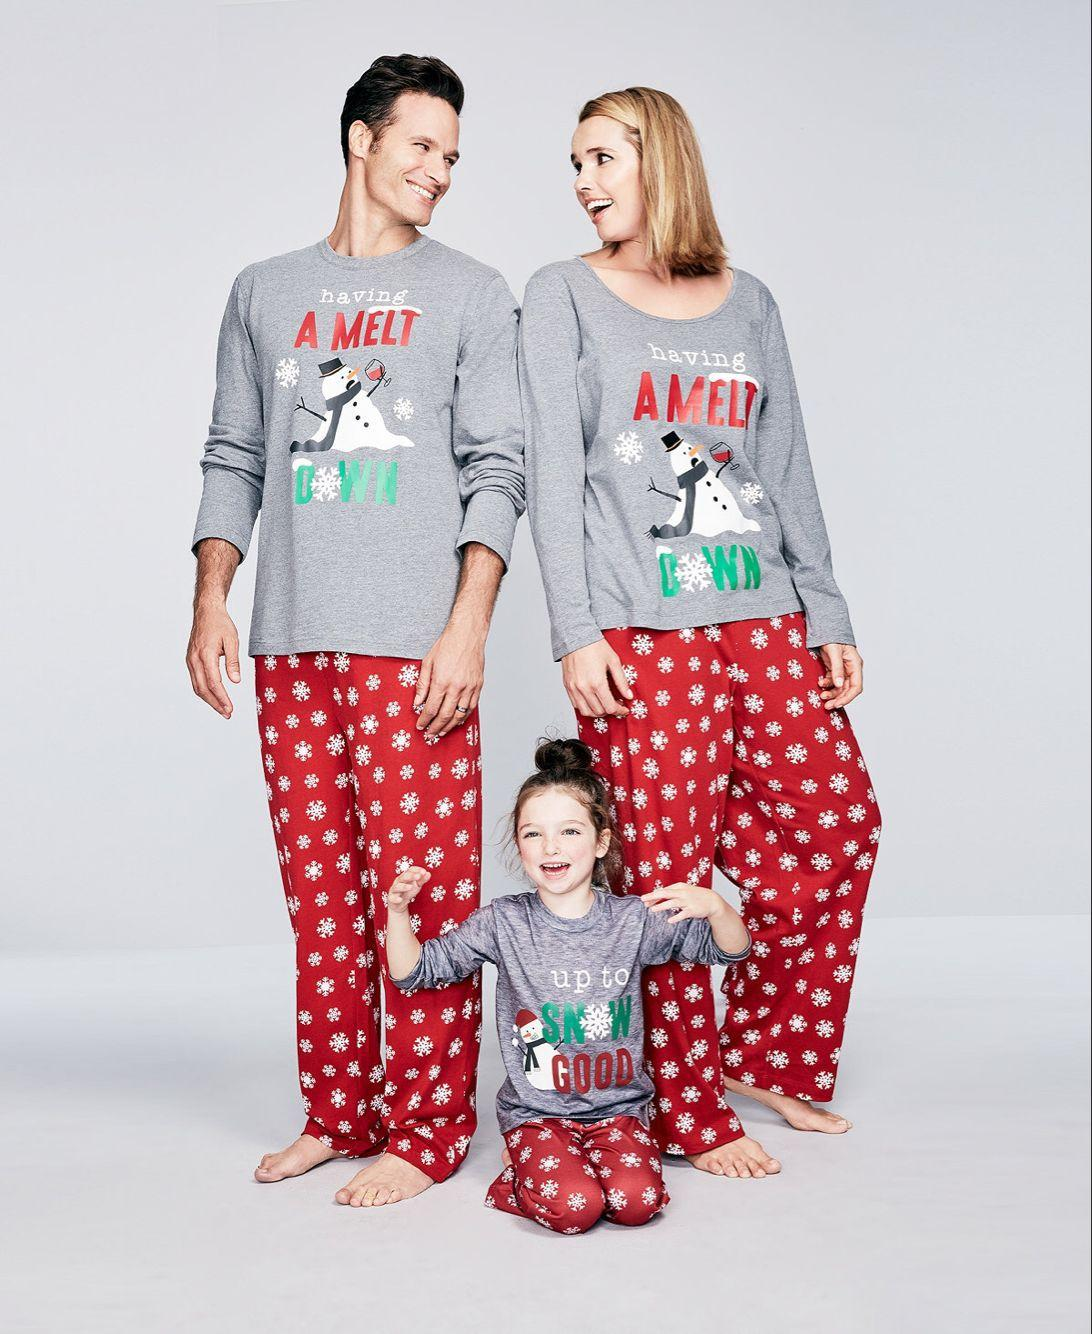 d874a401945d Family Matching Christmas Pajamas Set Up To Snow Goodandhaving A Melt  DownTops And Long Pants Sleepwear For Family Matching Shirts For Family  Family ...